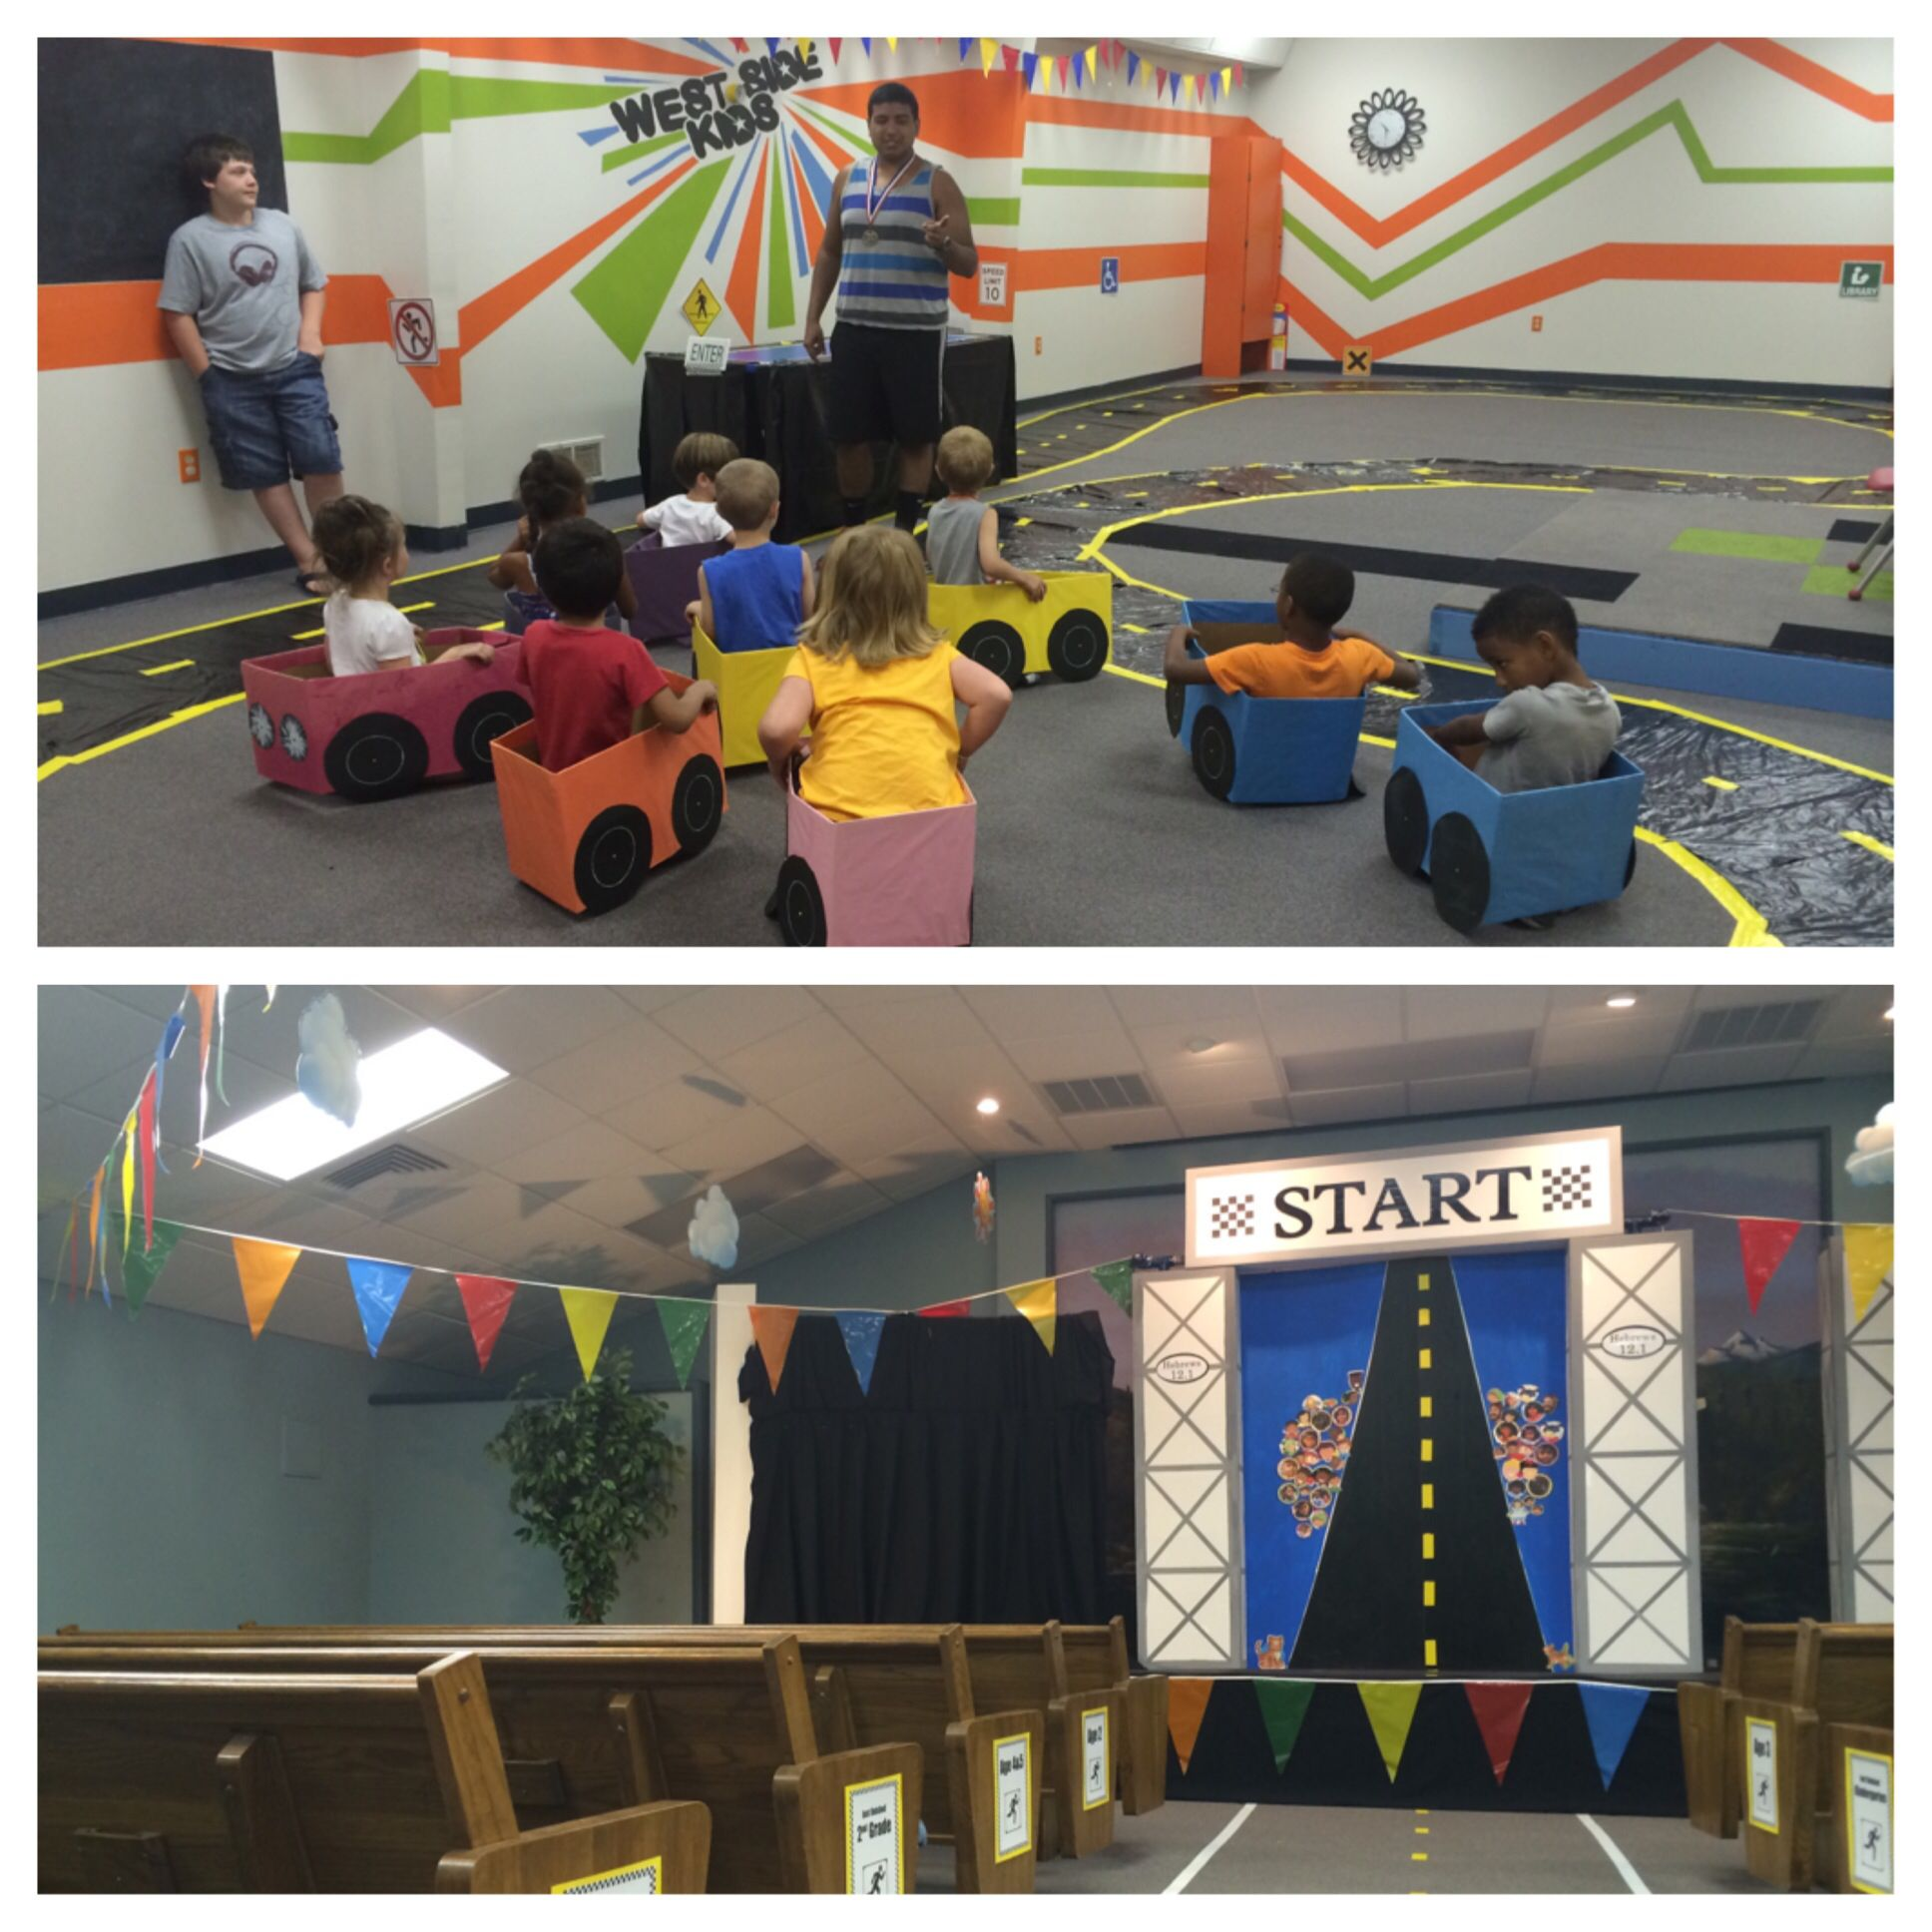 The Race Is On Vbs Road With Race Cars Car Themed Parties